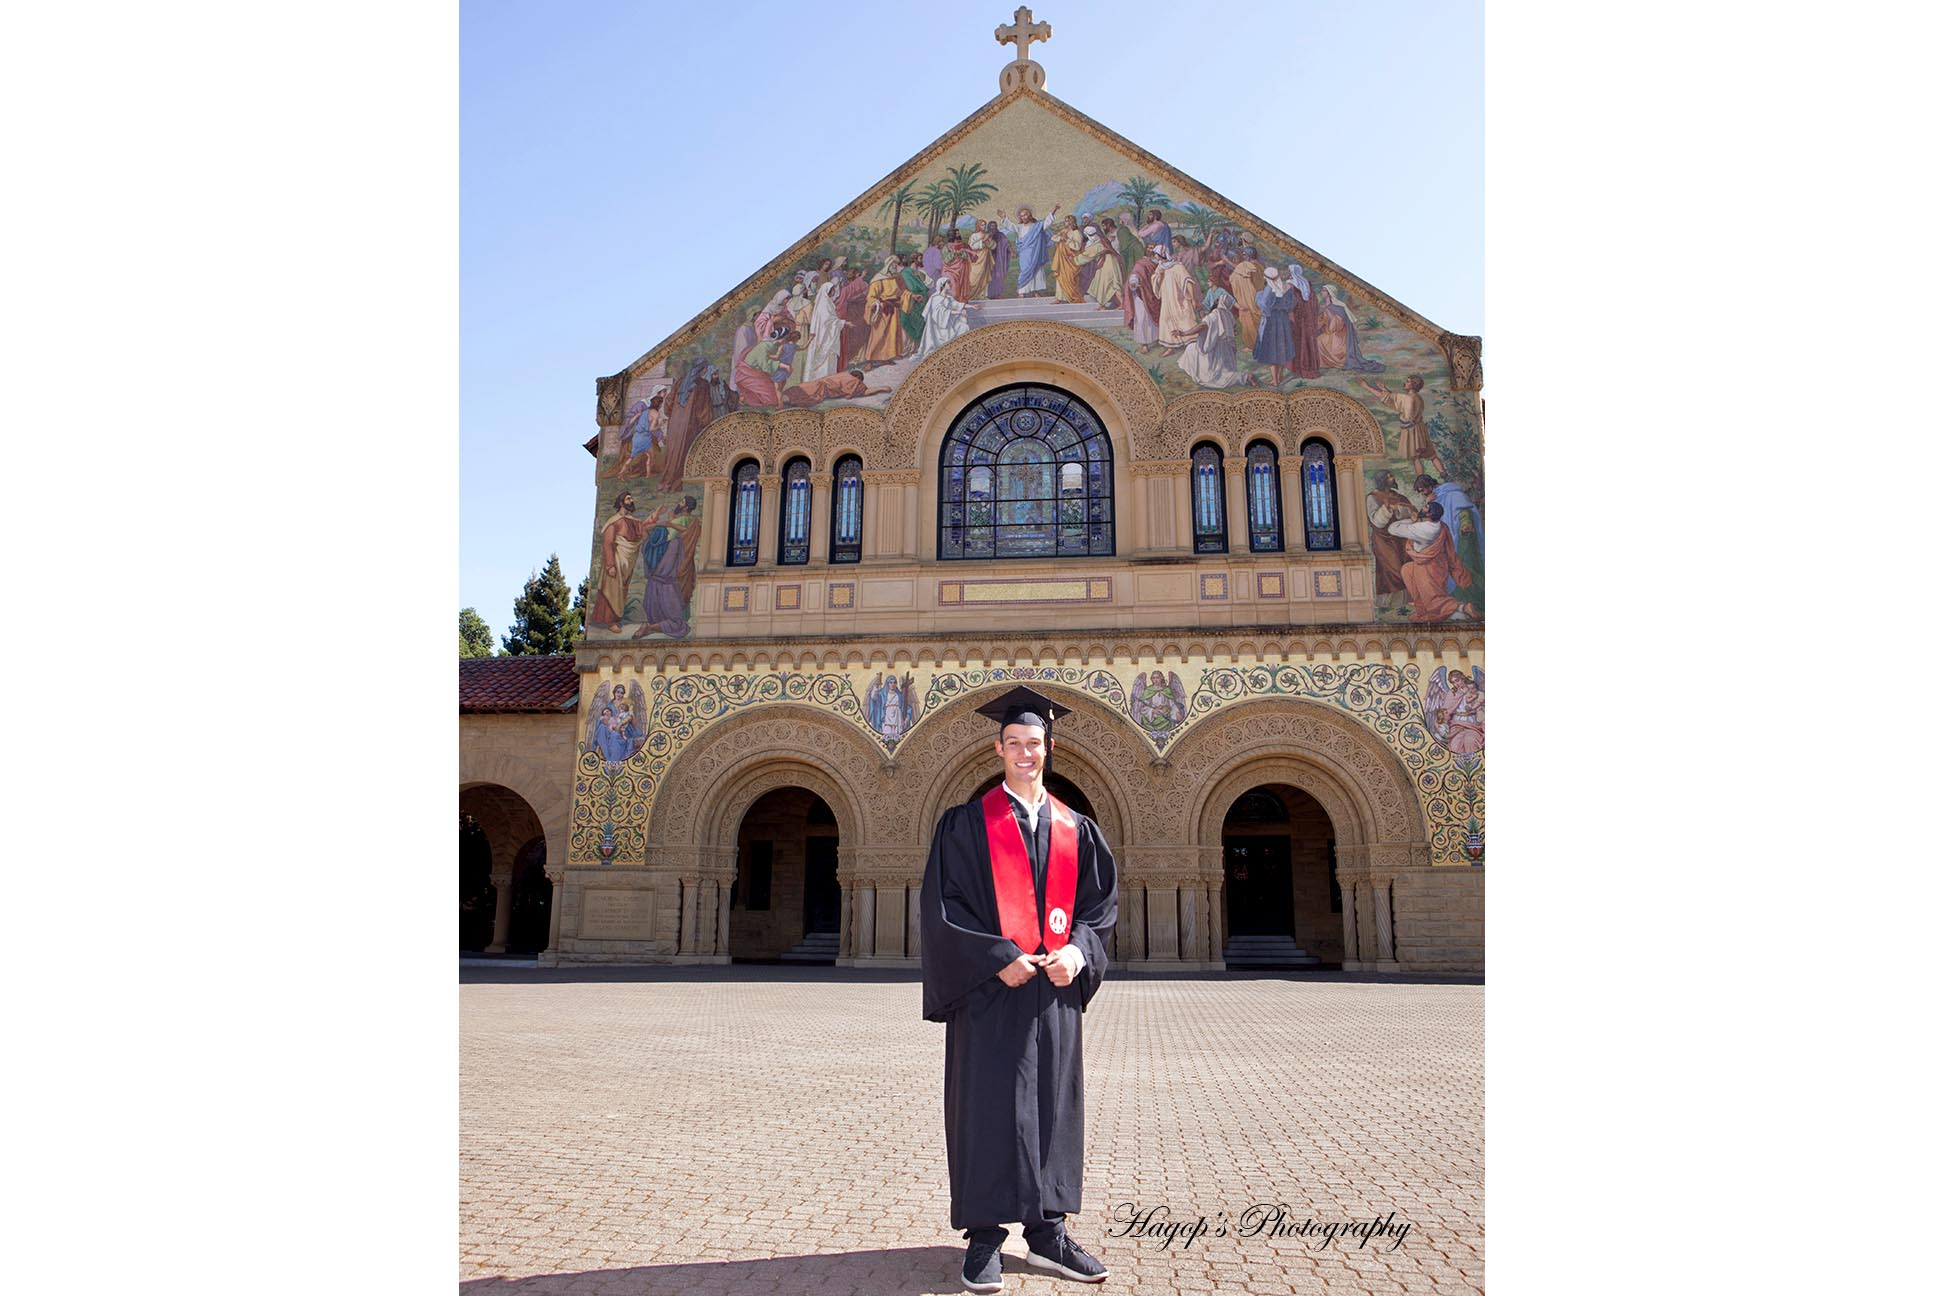 graduation portrait with the memorial church in the background